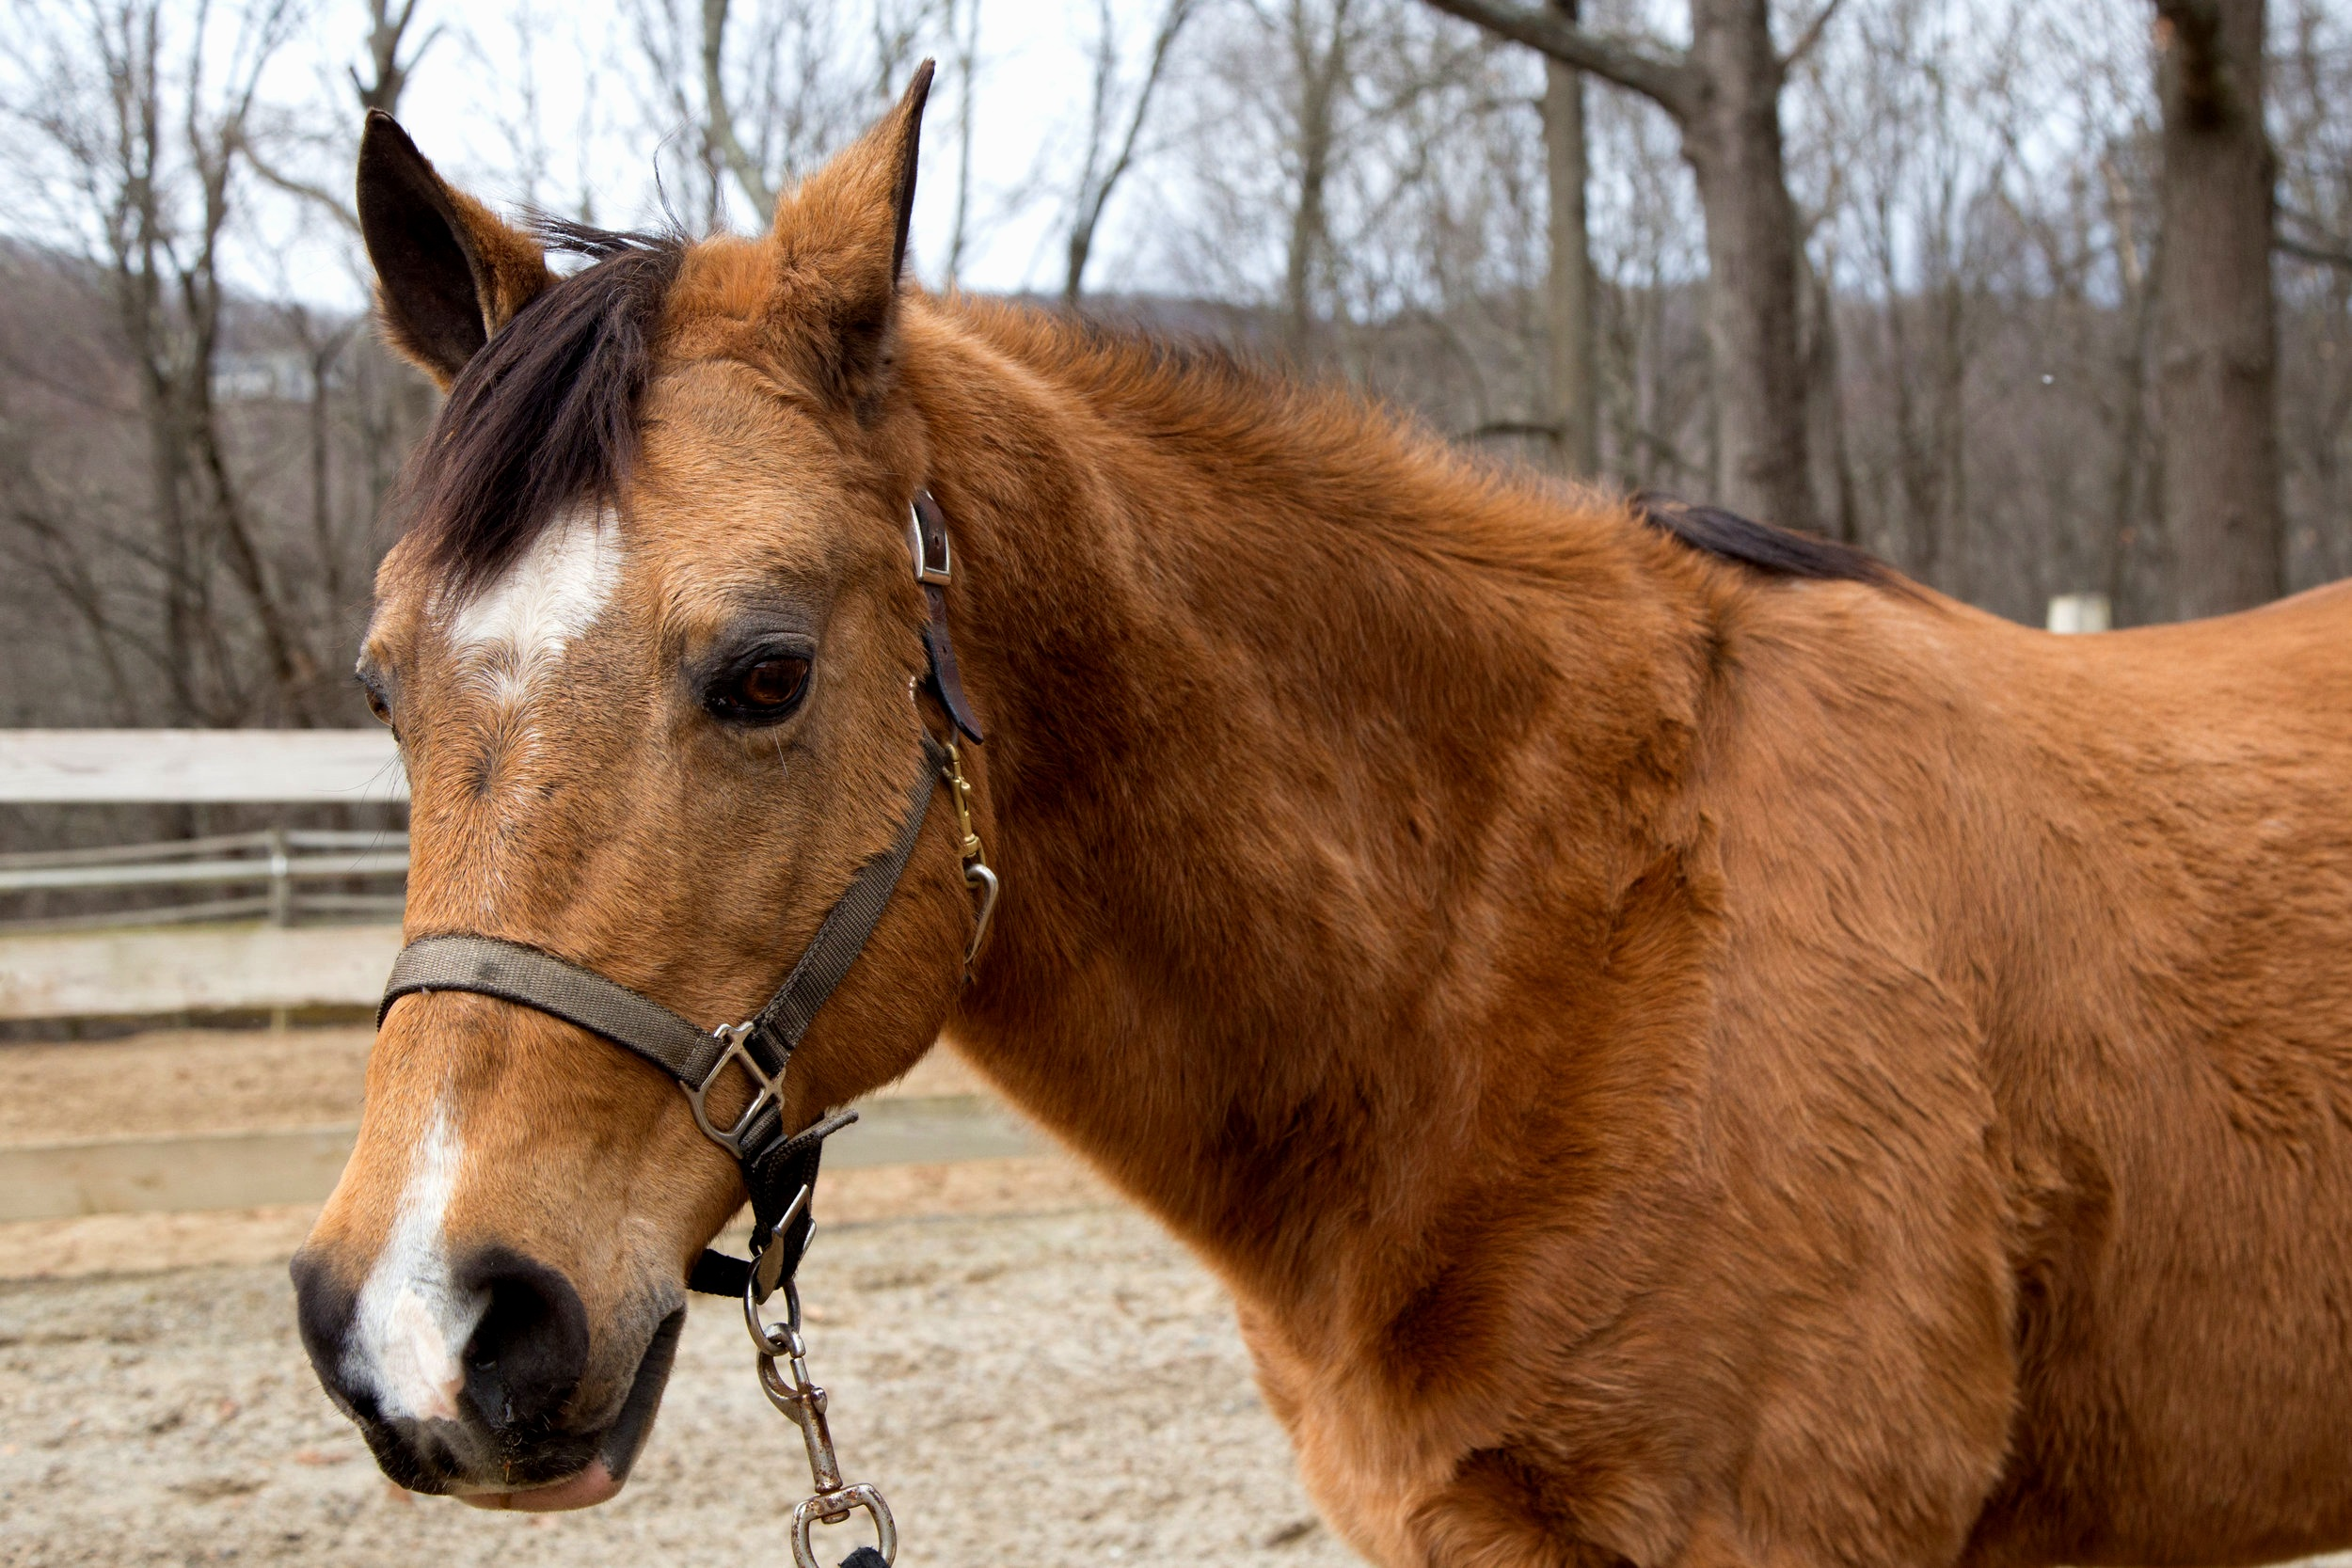 Dancer is a buckskin Quarter Horse with a Western-style competition background. She's affectionate and connects well with people.